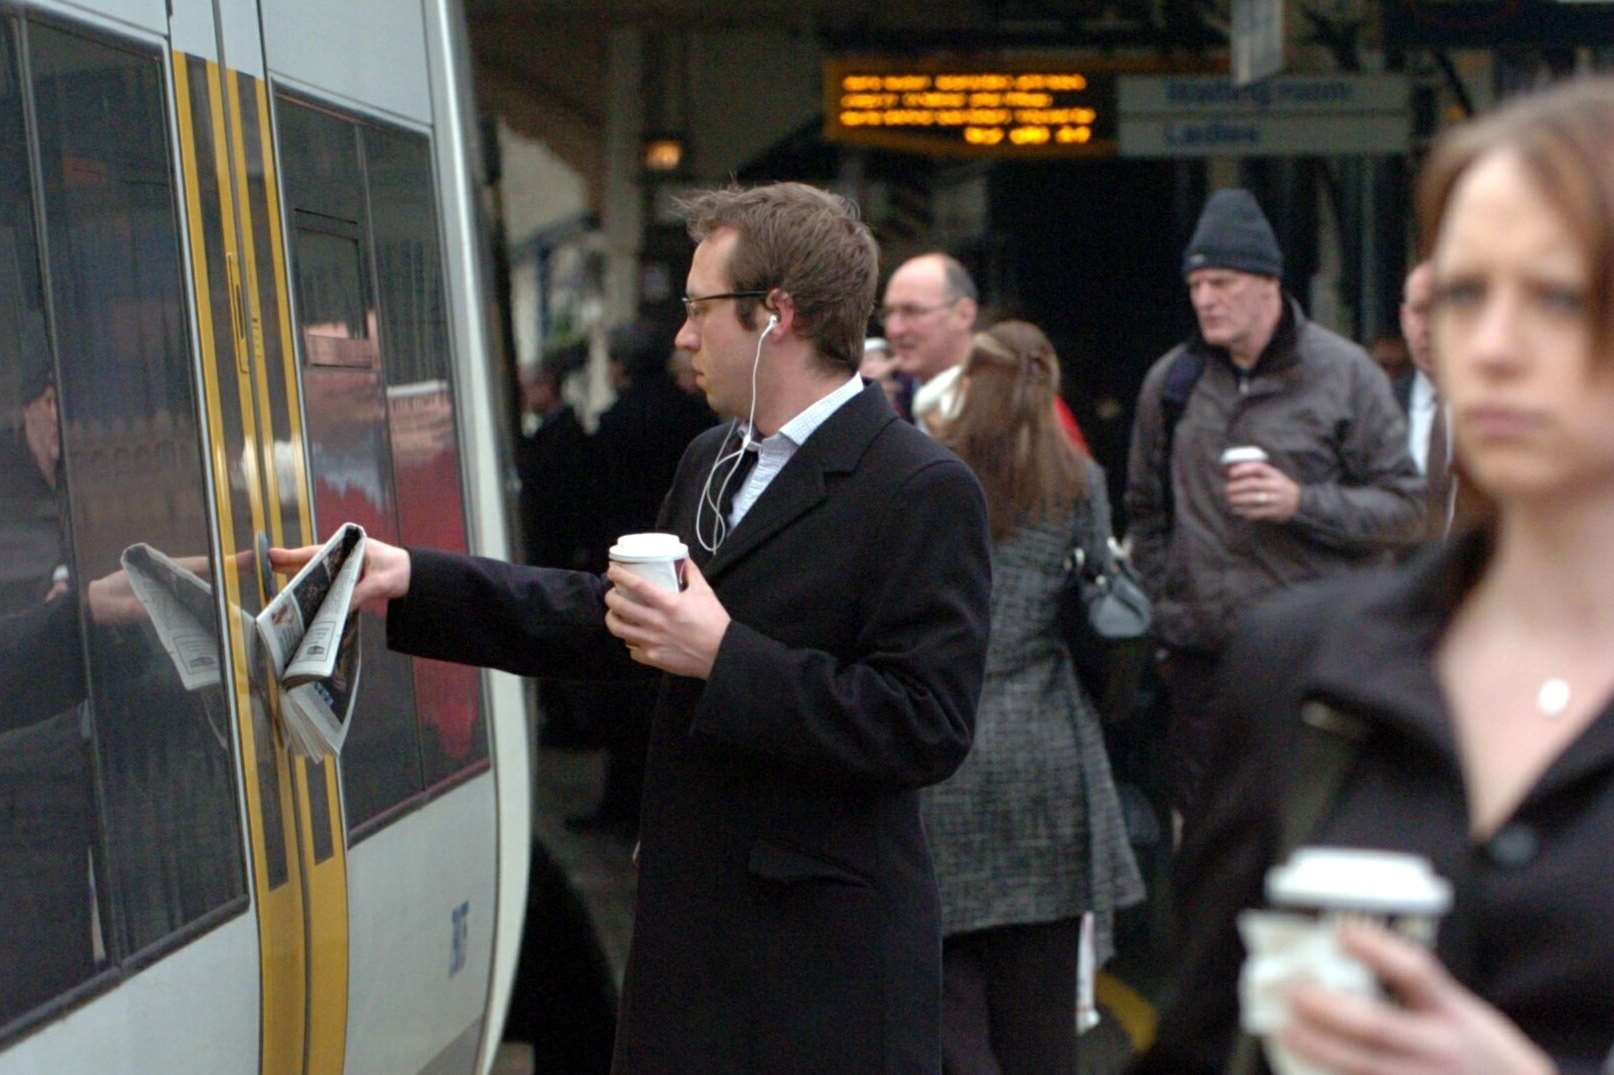 Commuters are being told to expect disruption. Stock image